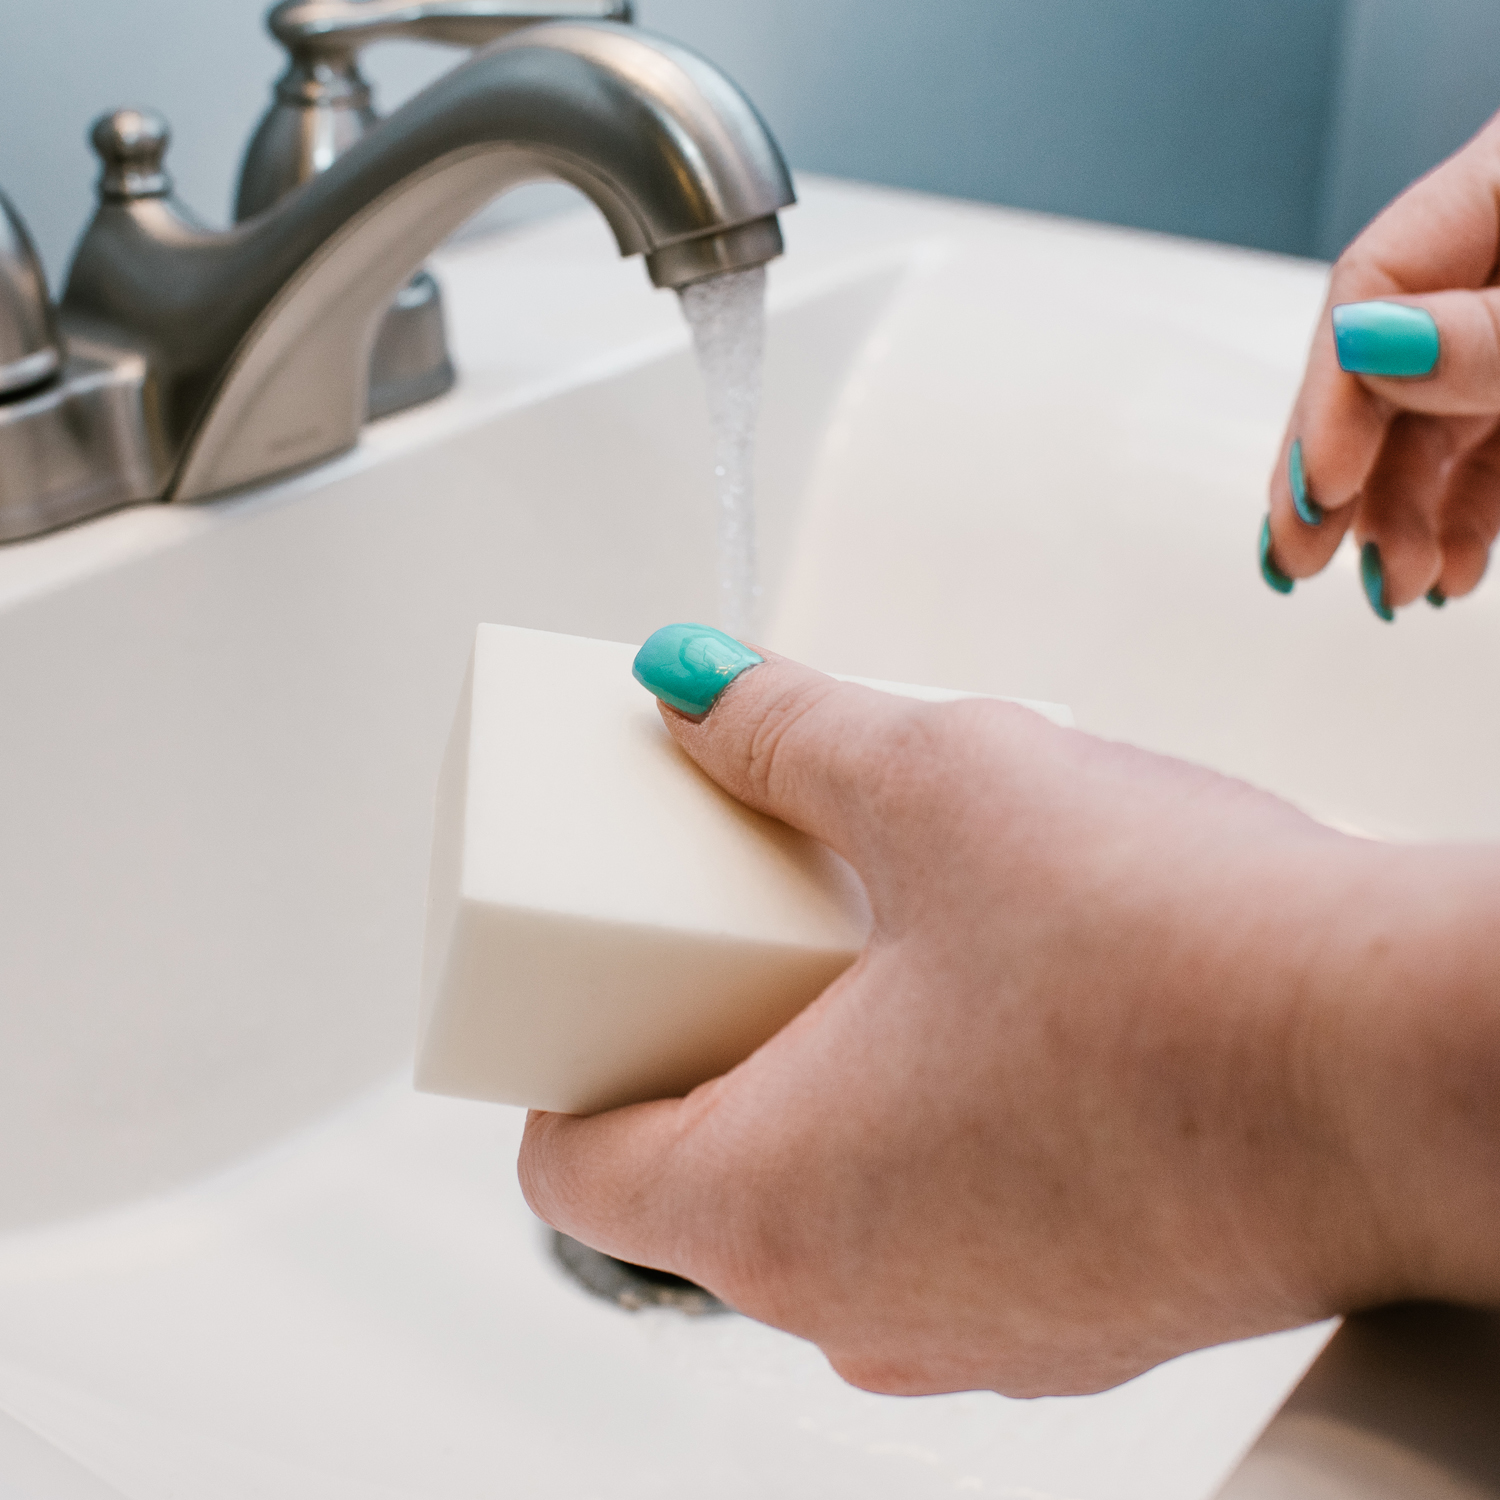 woman washing hands with bar of soap